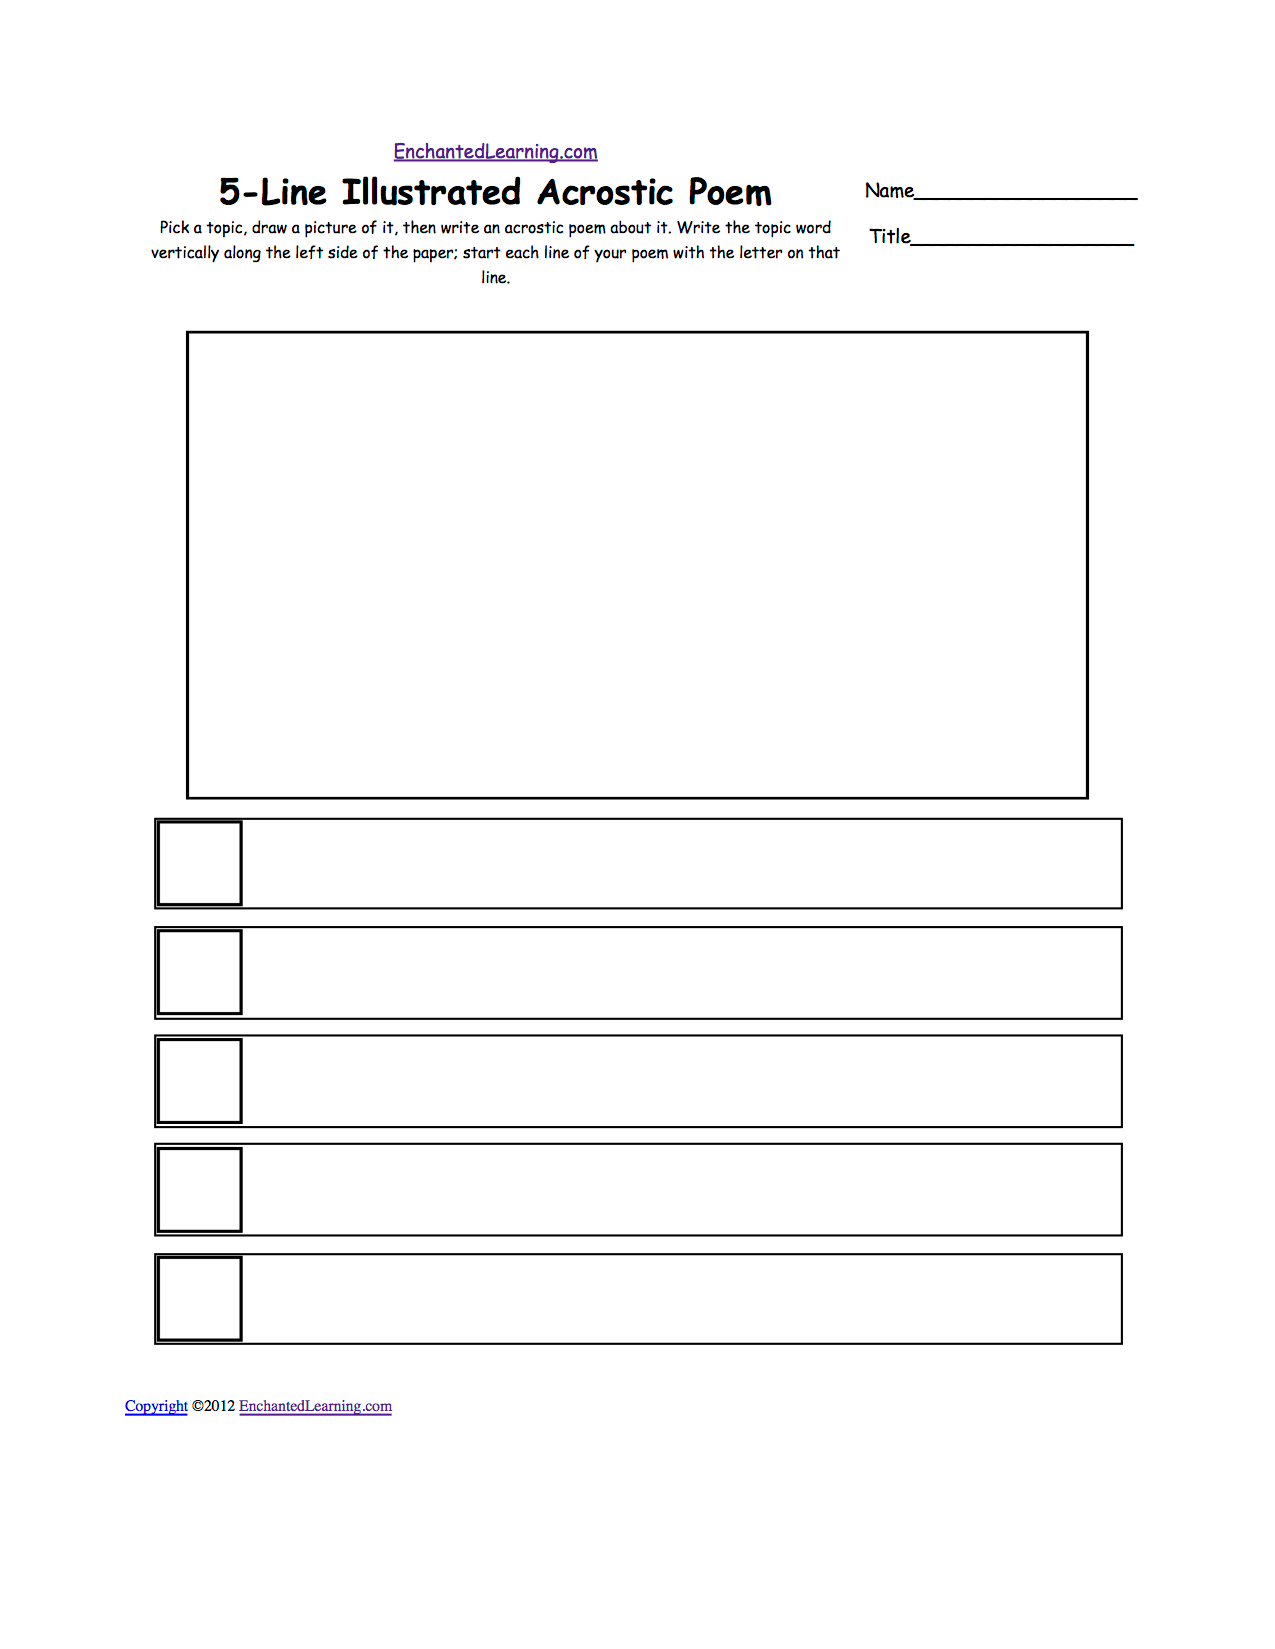 Help Wanted Blank Worksheet